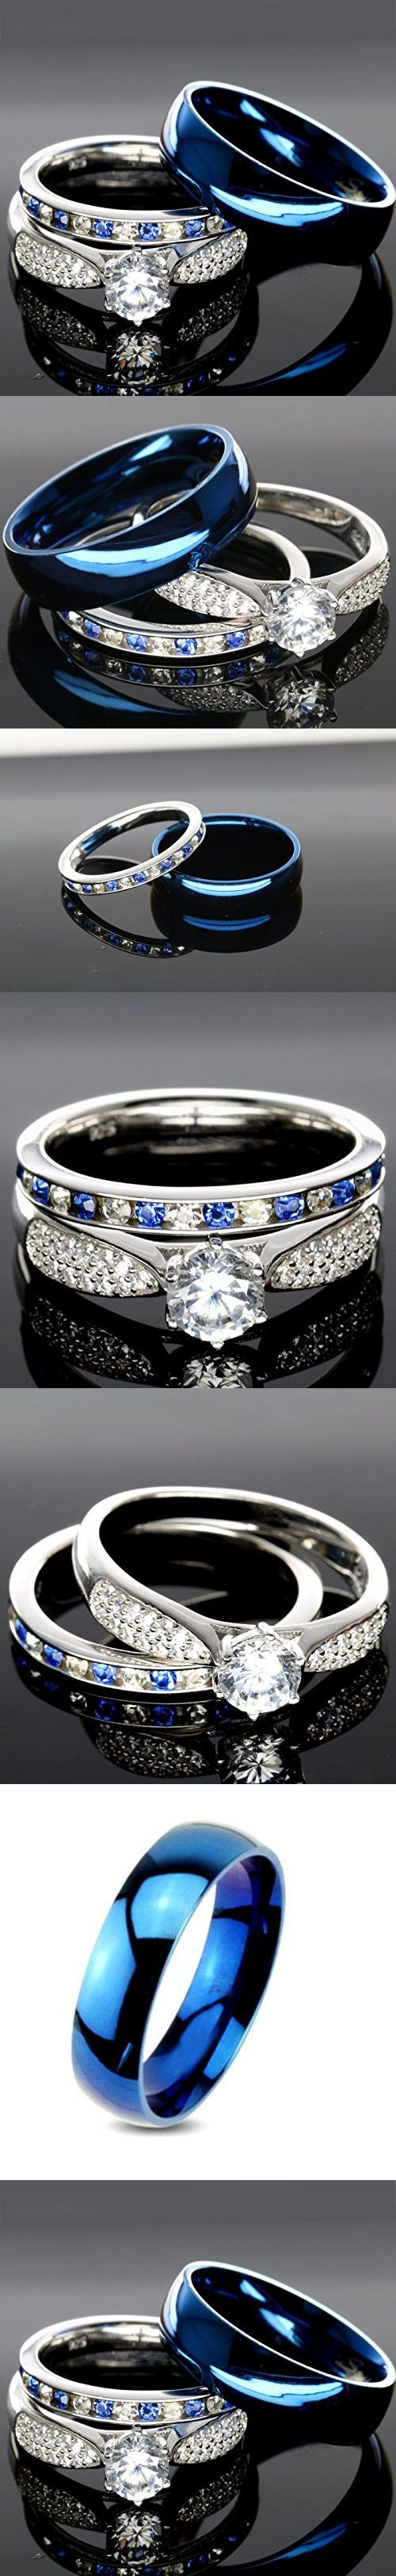 jewelry ropl dp rings uk black jewellery mens ring tungsten celtic wedding amazon steel co silvering dragon queenwish carbide blue band